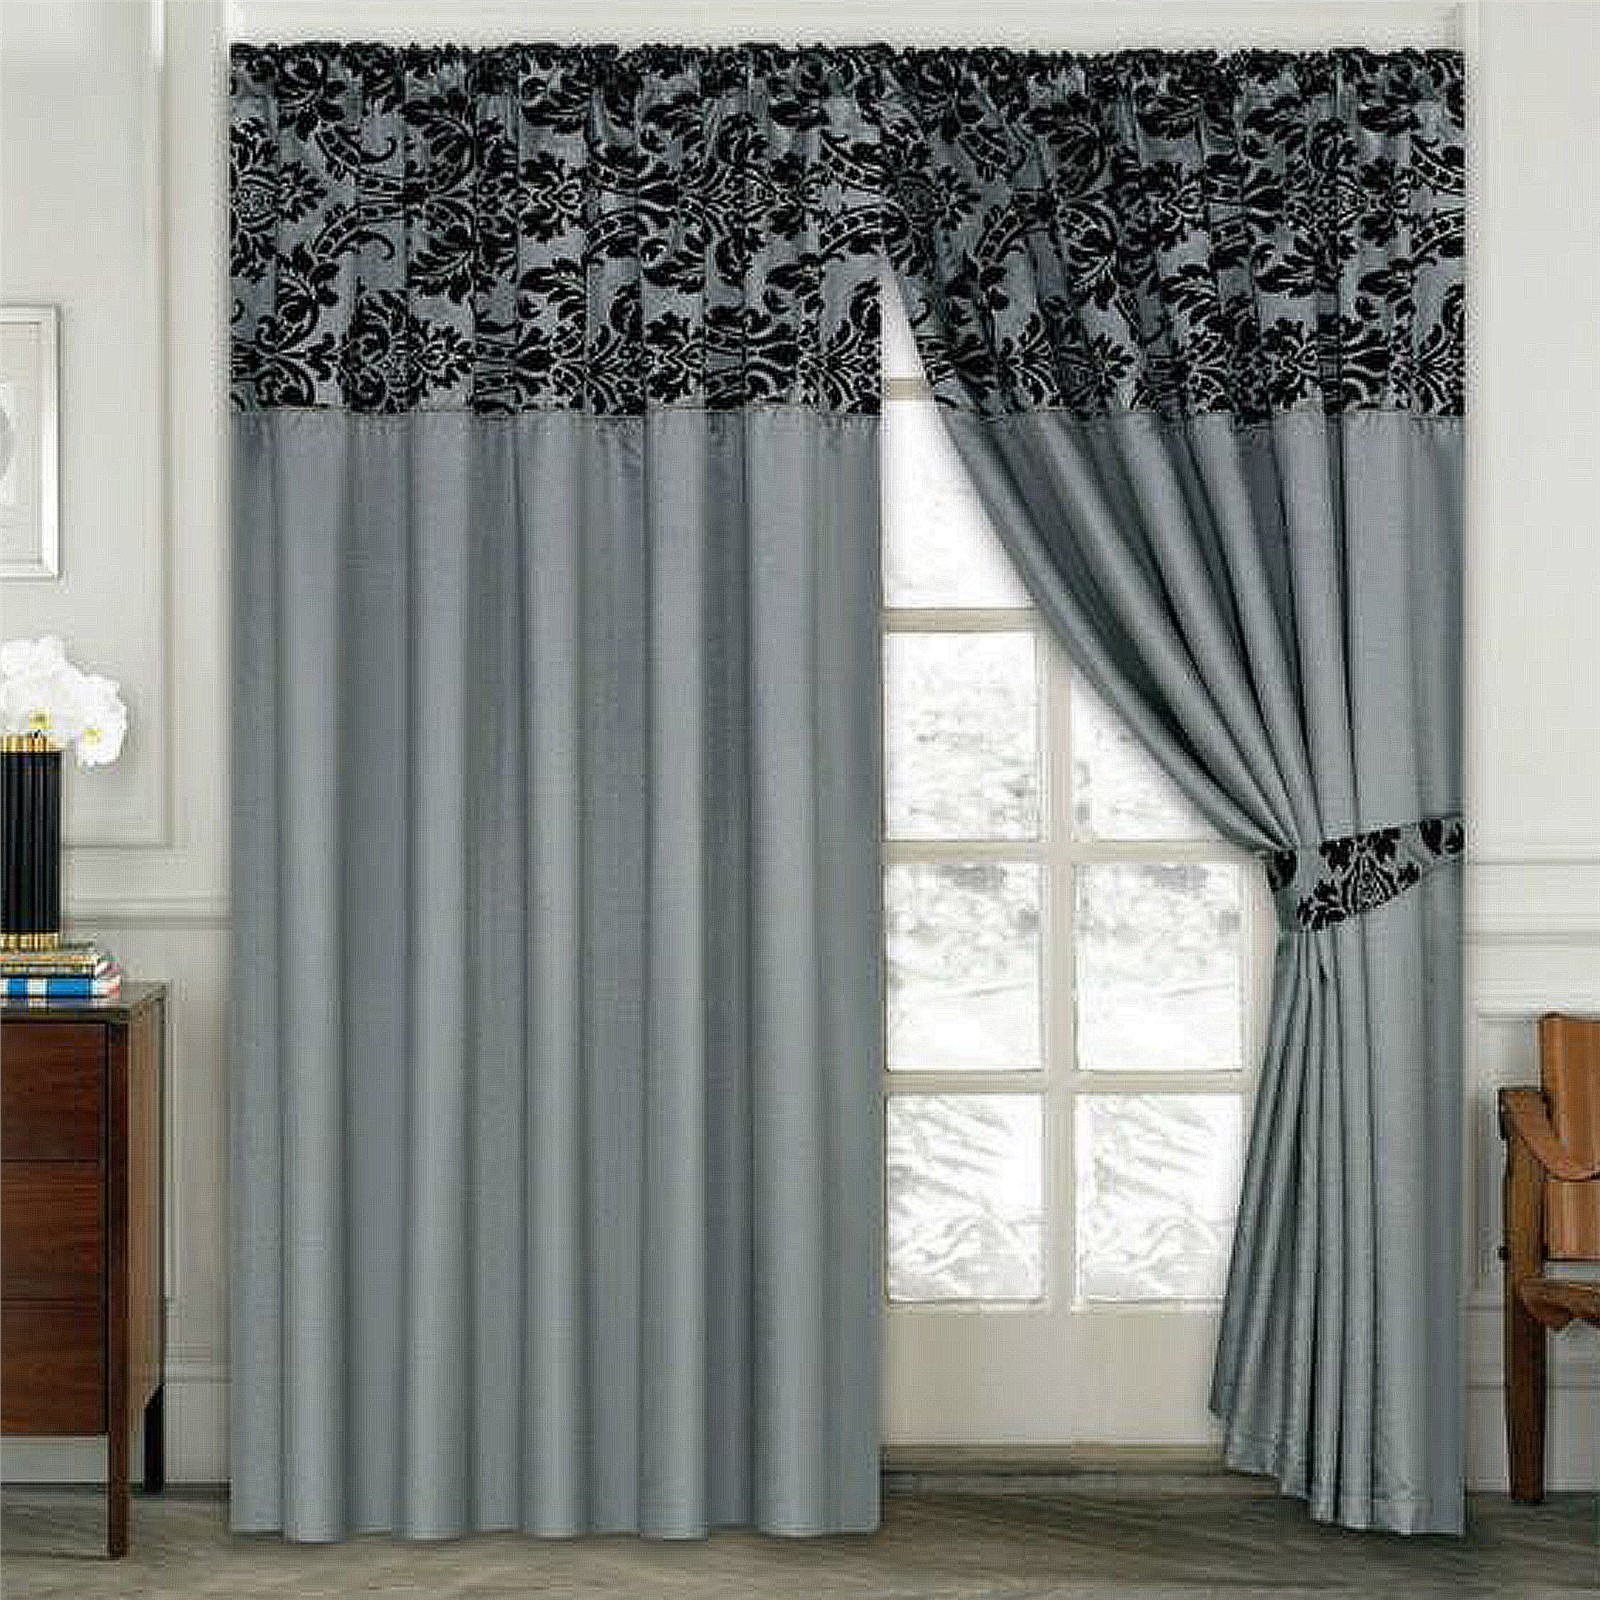 Curtains For Kitchens Large Arched Windows Living Room Window Patio Doors Picture